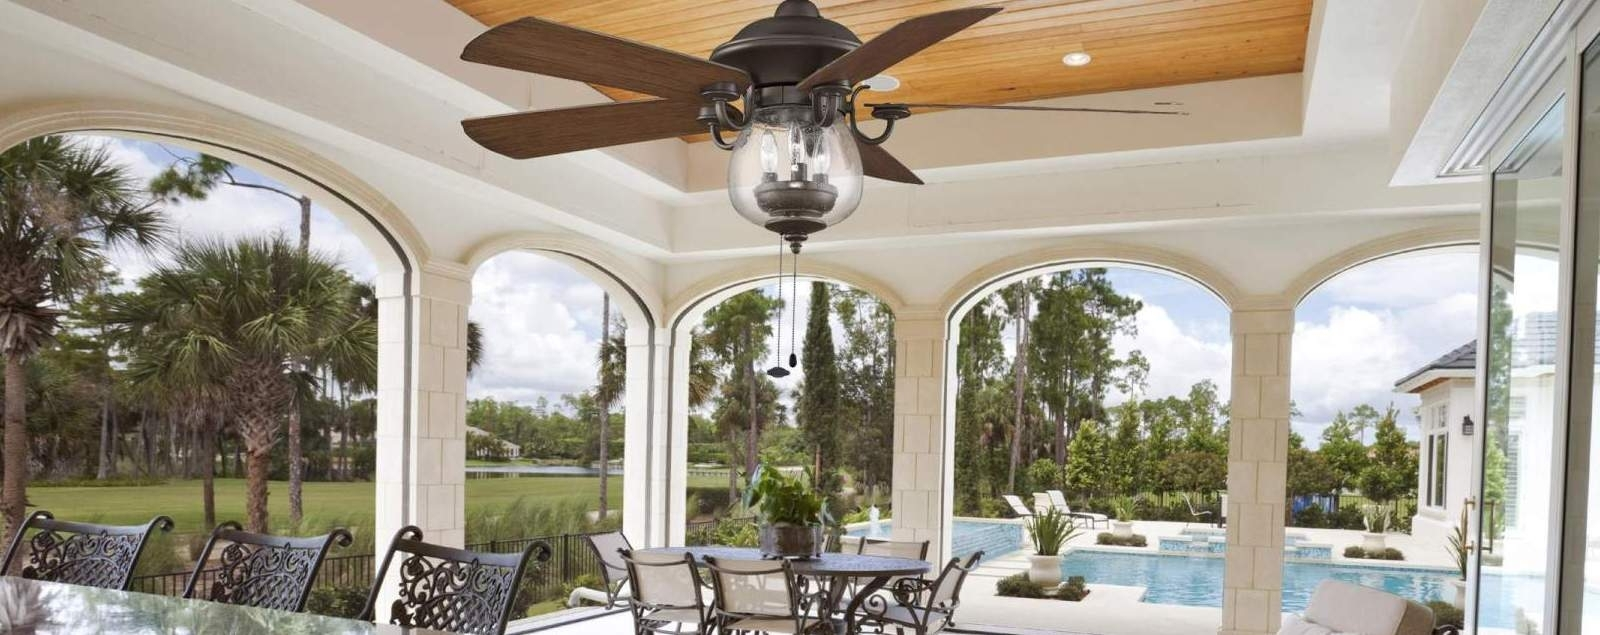 Latest Outdoor Ceiling Fans – Shop Wet, Dry, And Damp Rated Outdoor Fans Throughout Wet Rated Outdoor Ceiling Fans With Light (Gallery 13 of 20)